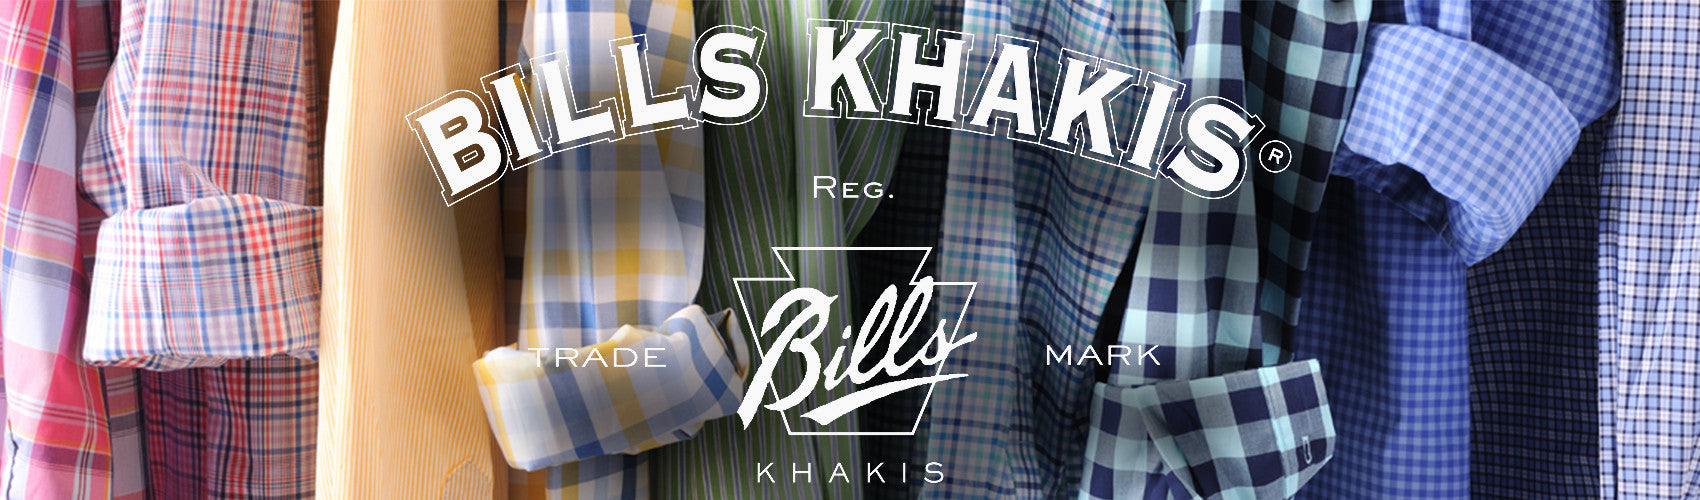 Bills khakis shirts pants and fine American made goods USA